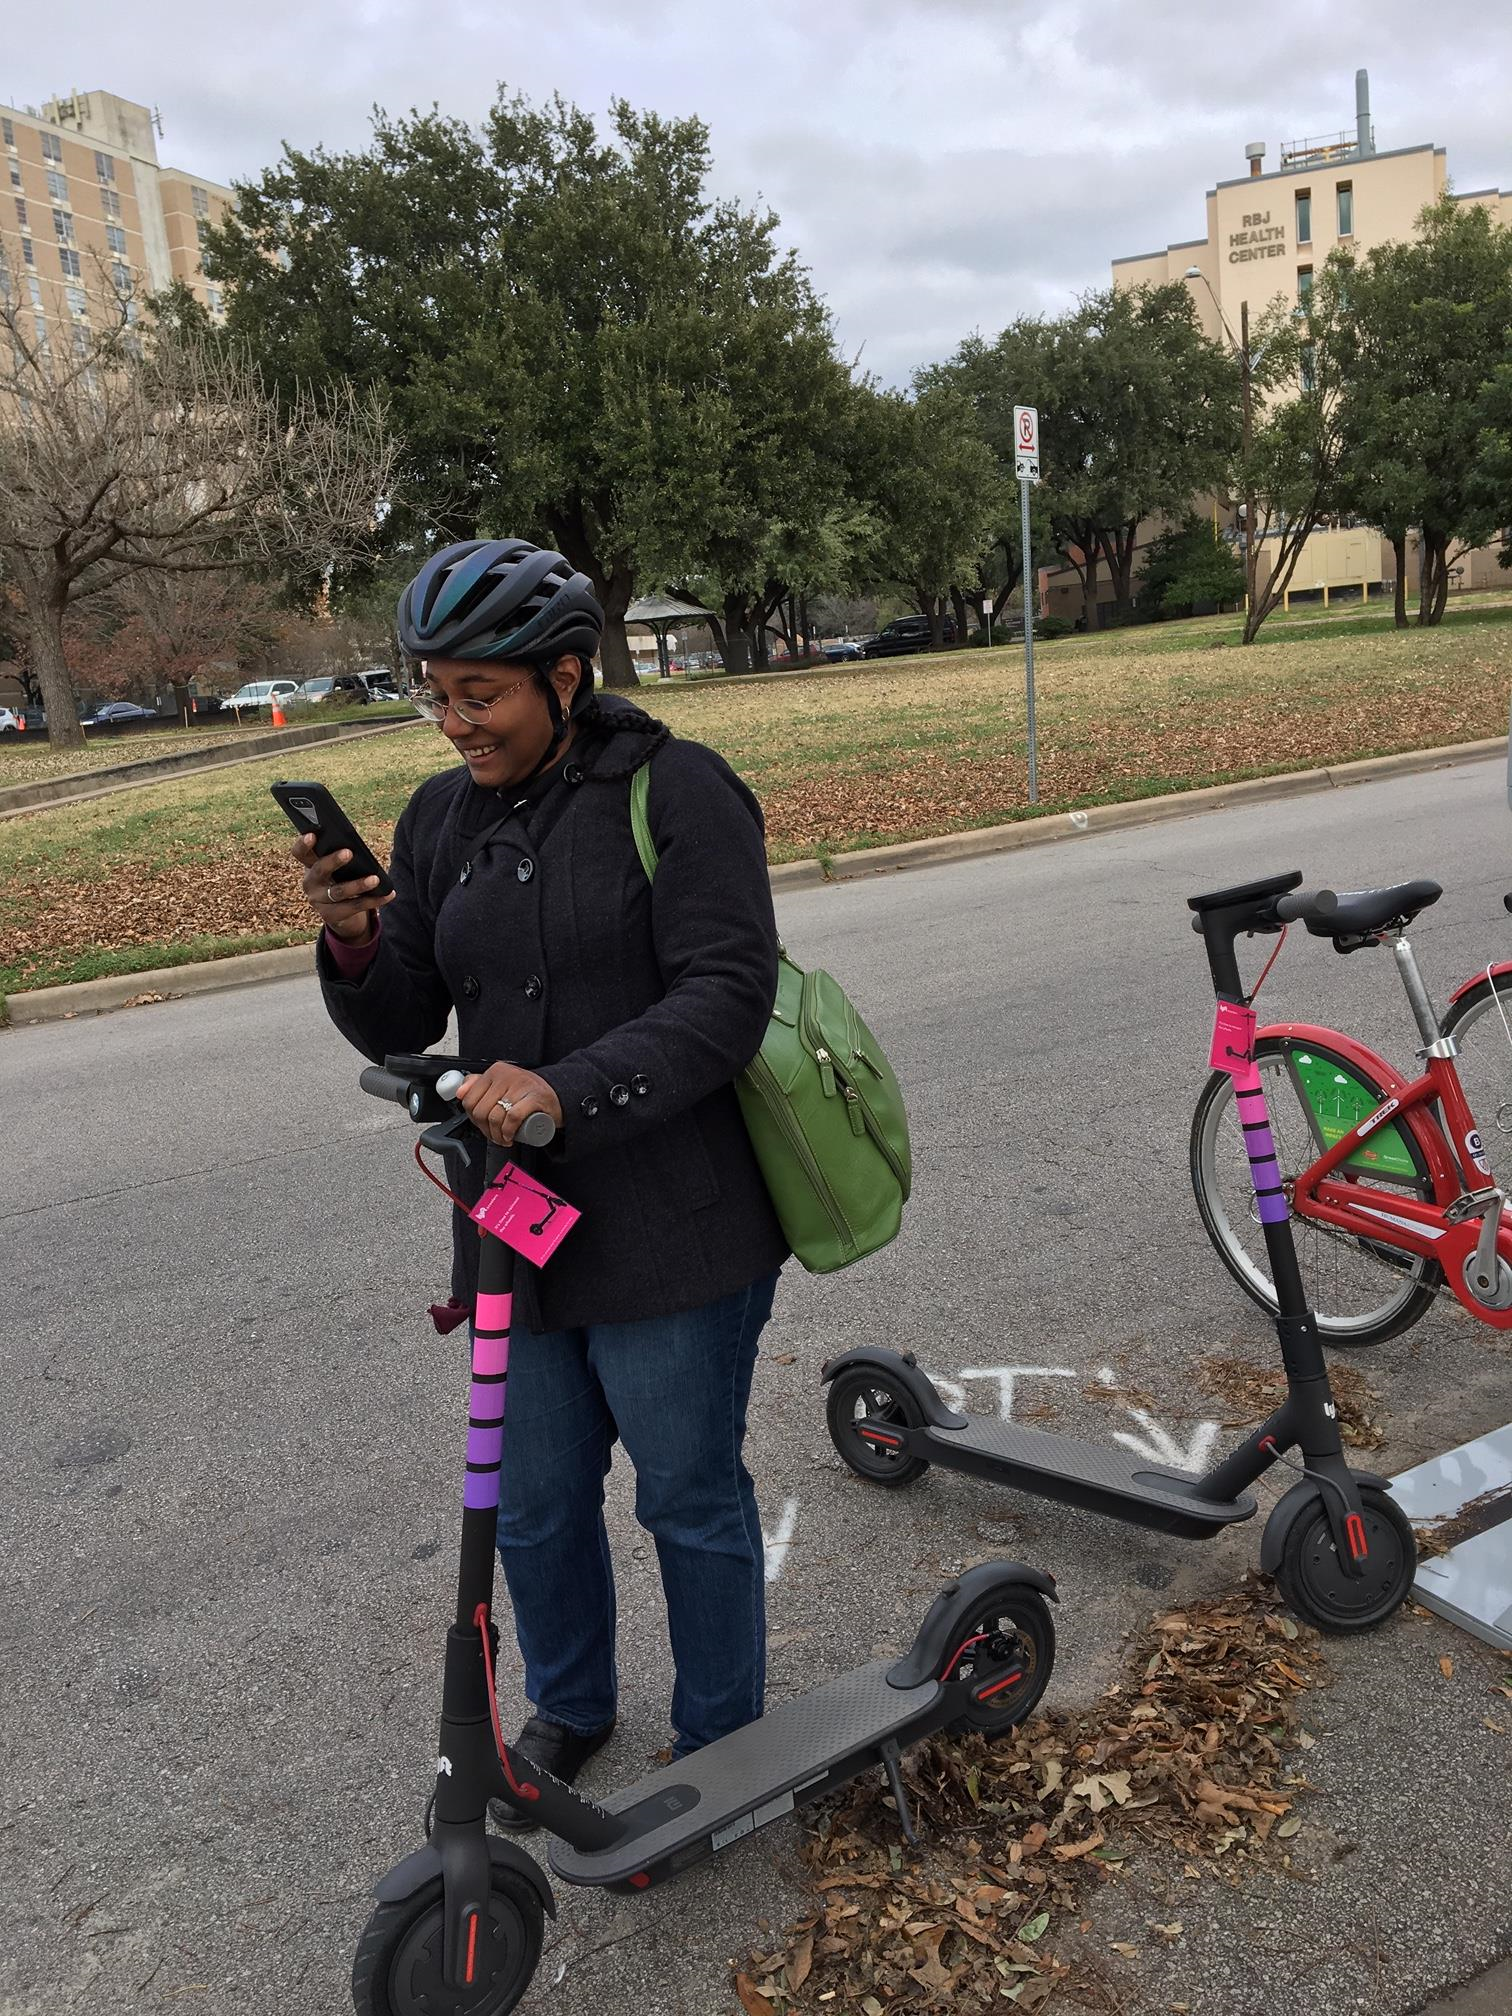 EIS officer tests a dockless electric scooter